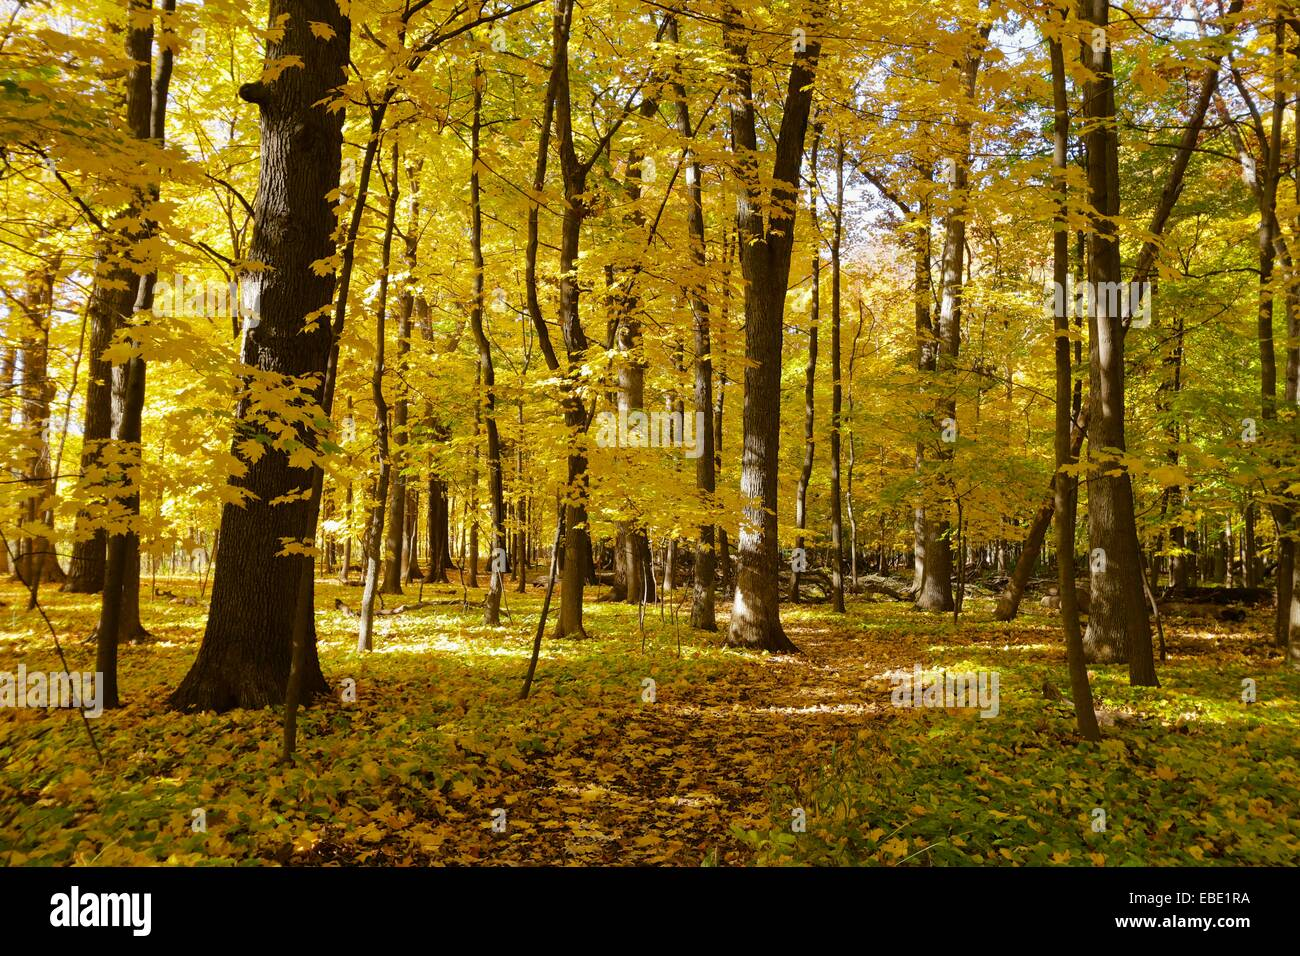 Autumn in an oak maple forest. Thatcher Woods Forest Preserve, Cook County, Illinois. Stock Photo